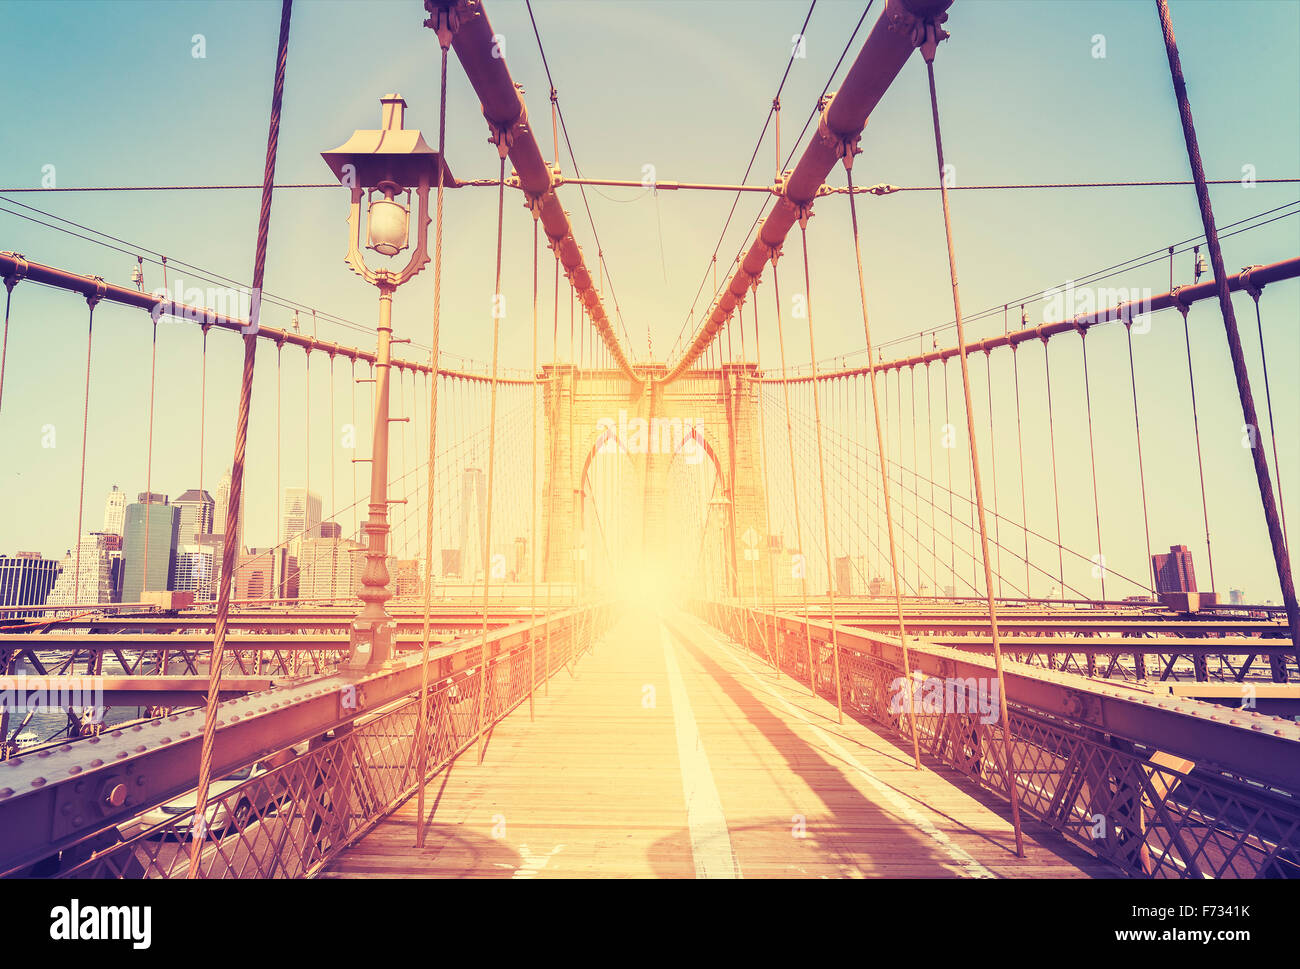 Vintage stilisierte Bild von der Brooklyn Bridge in New York City, USA. Stockbild